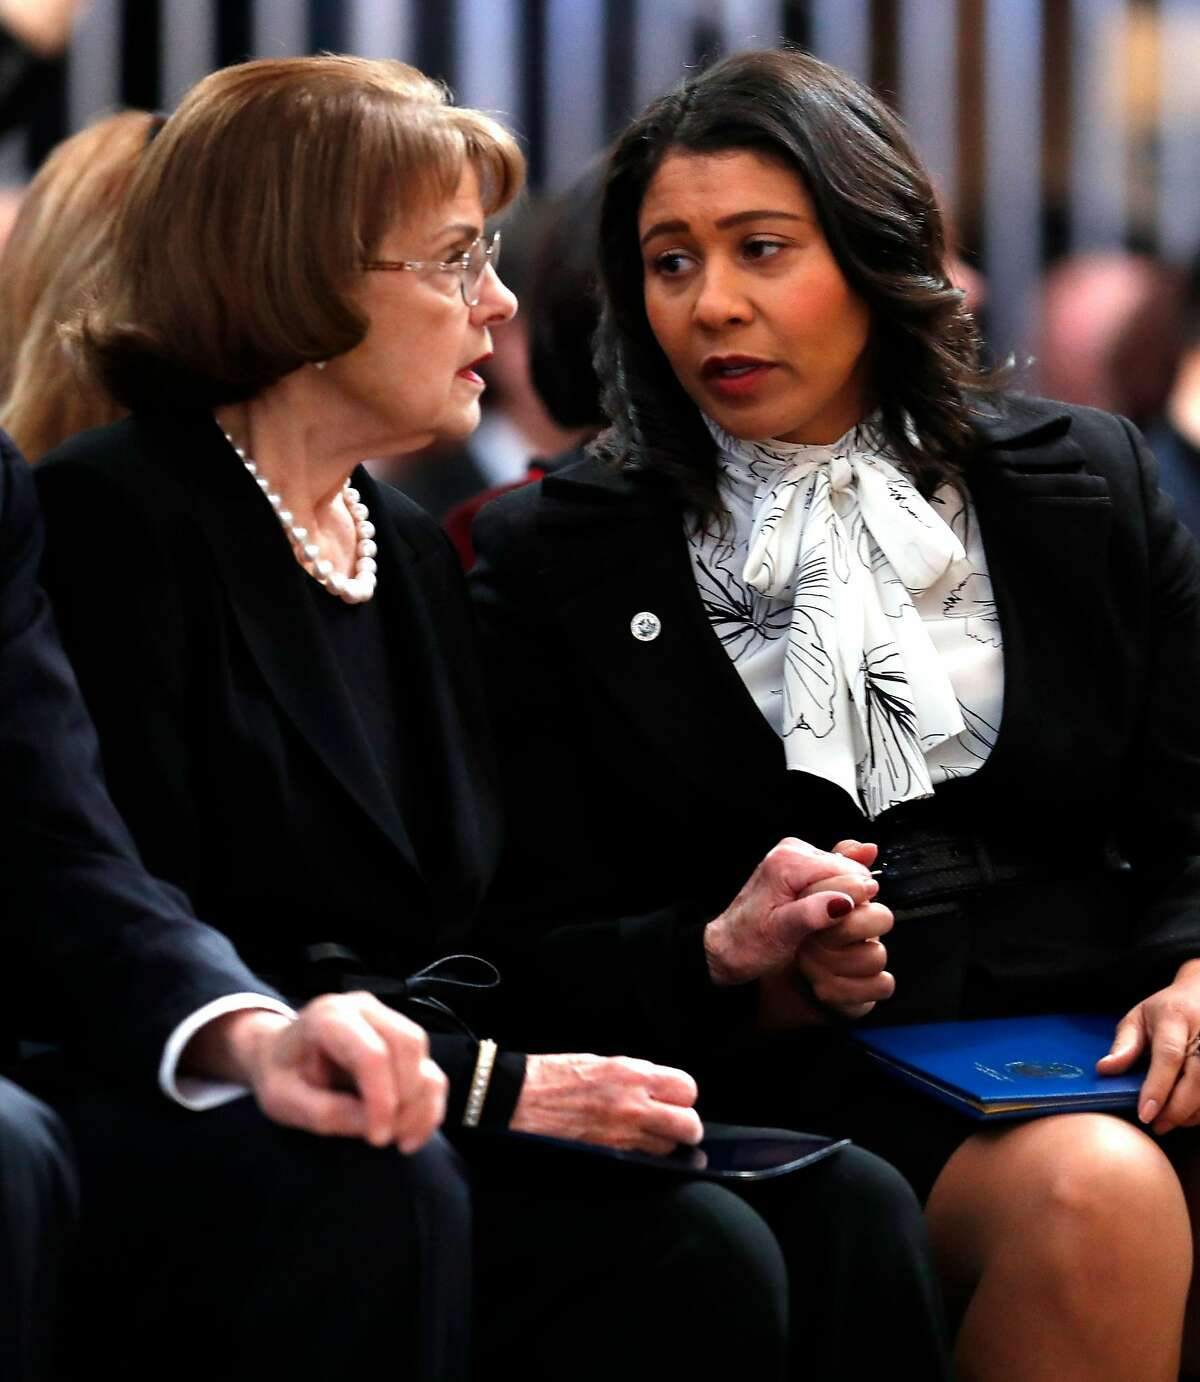 Senator Dianne Feinstein and San Francisco Acting Mayor London Breed hold hands before a service Celebrating the Life of Mayor Edwin M. Lee at San Francisco City Hall in San Francisco, Calif., on Sunday, December 17, 2017.